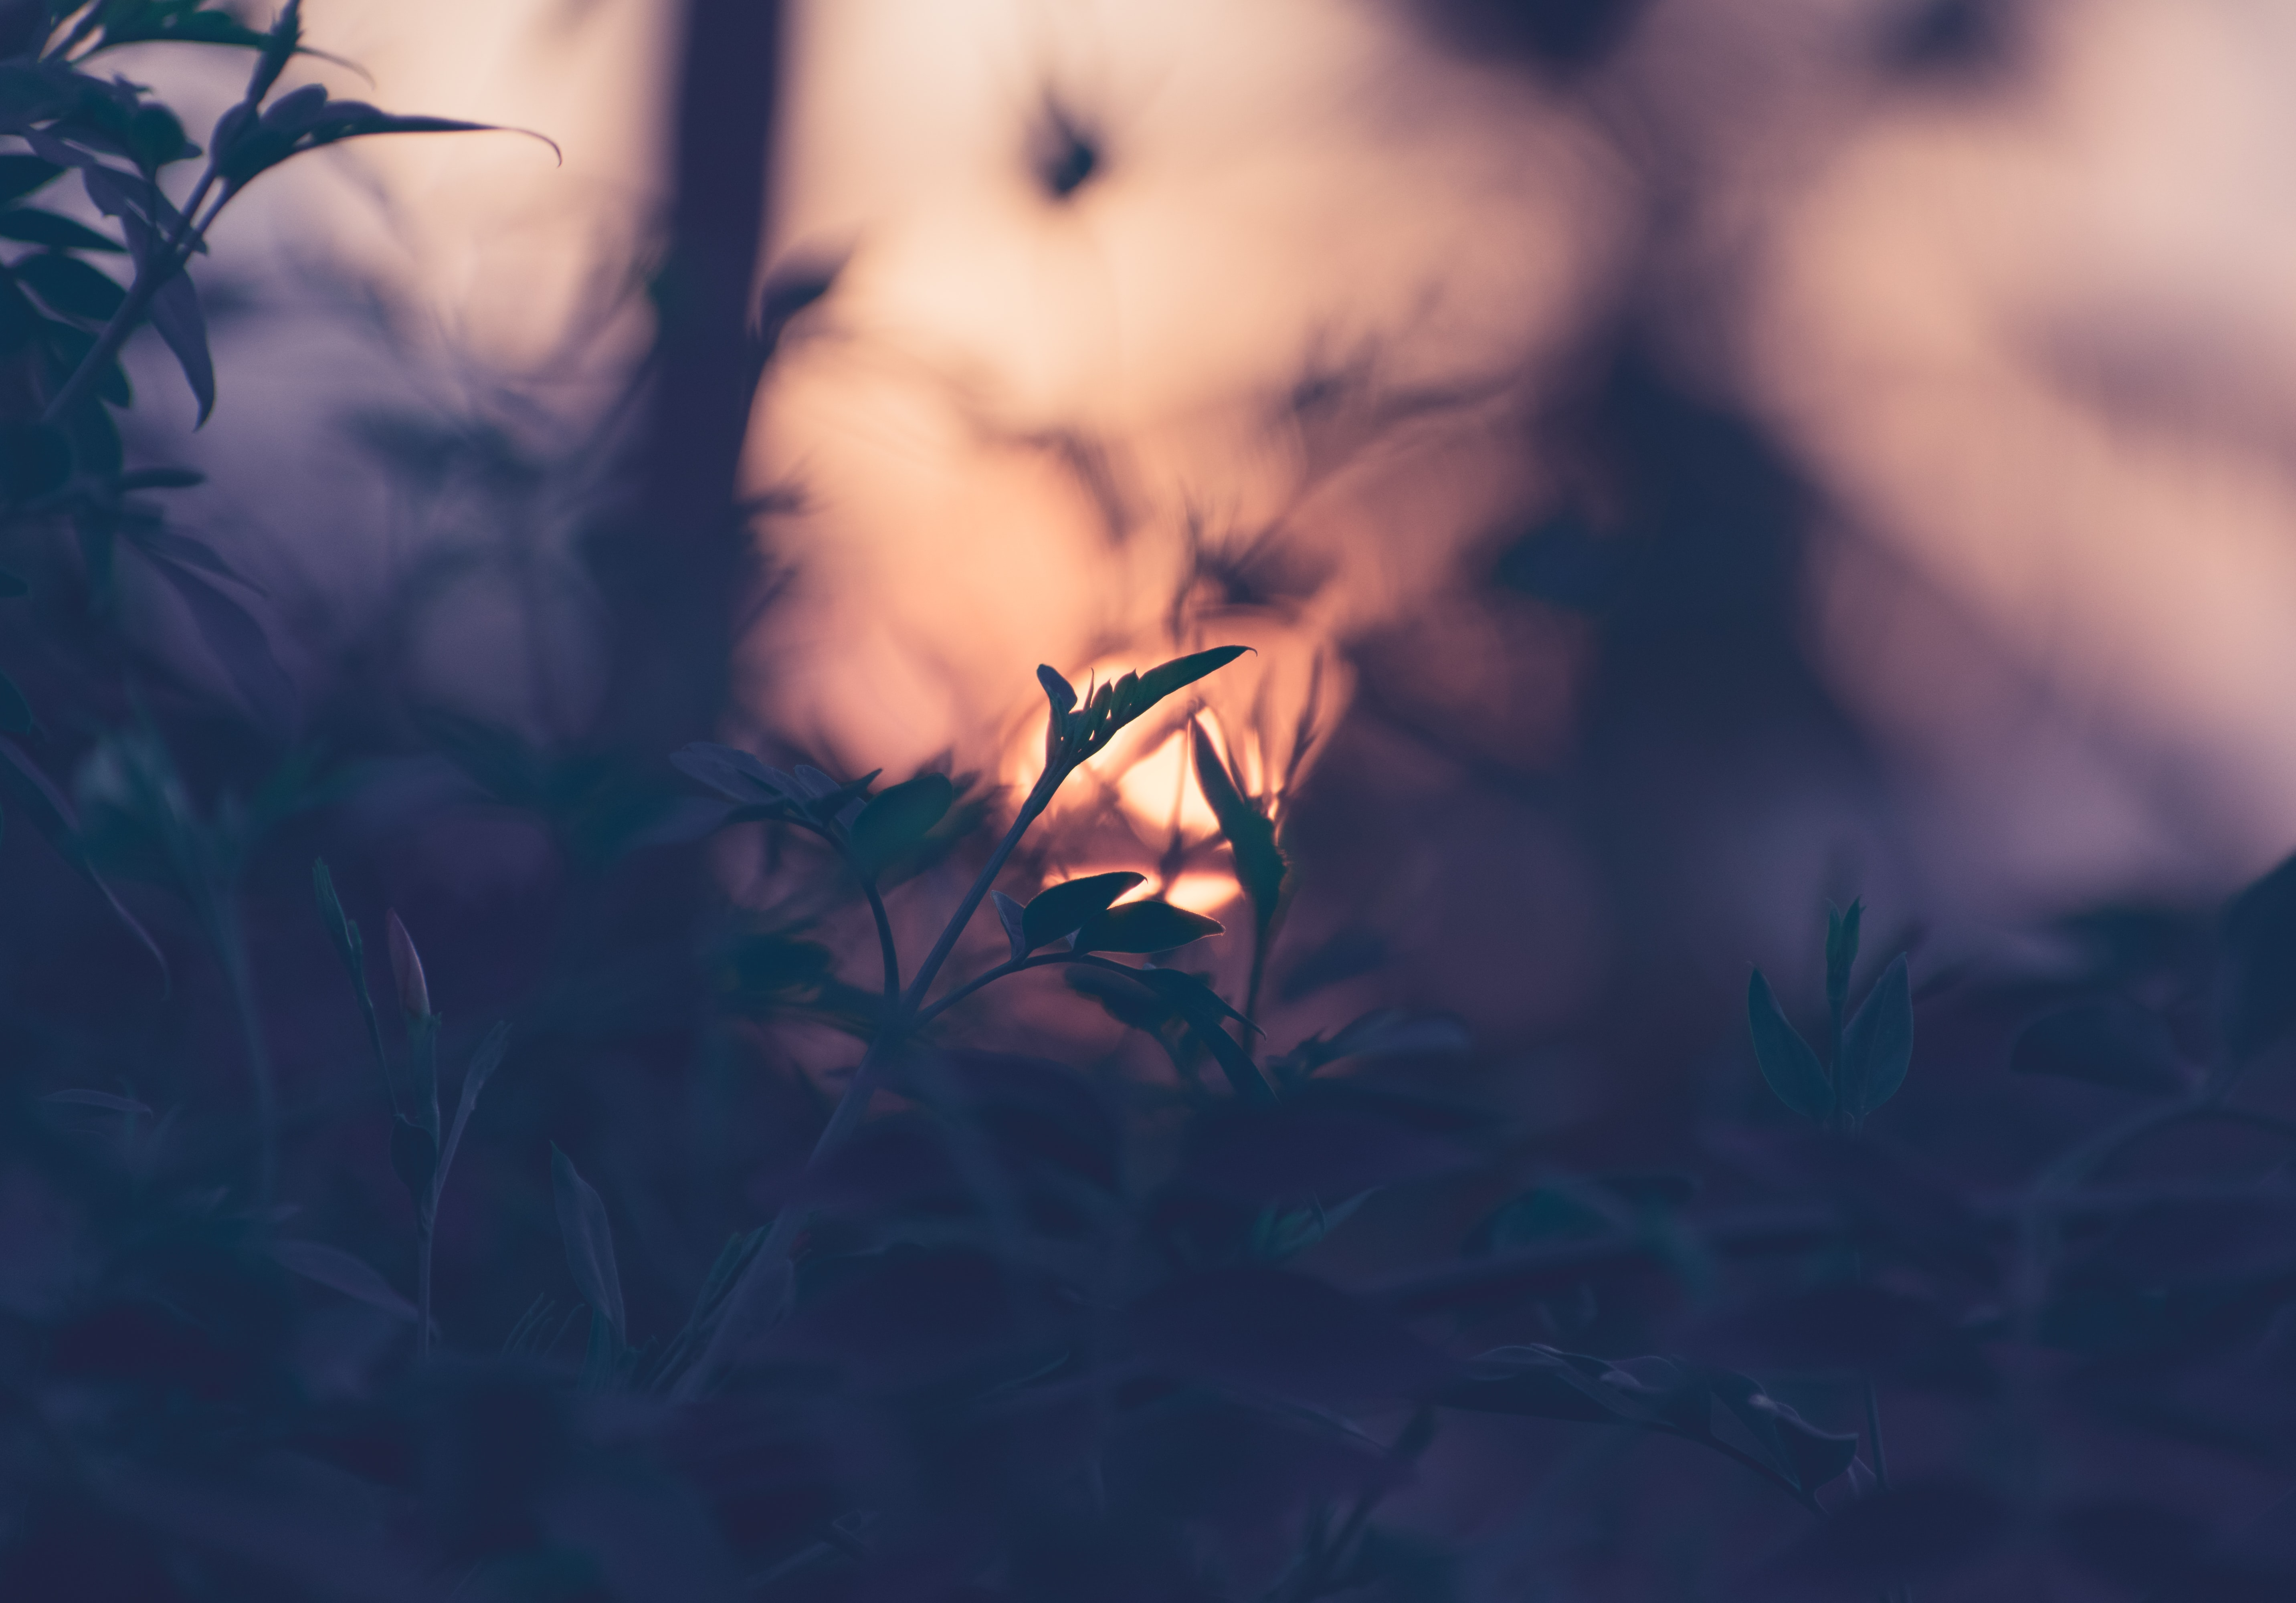 Image of a sunset through grass